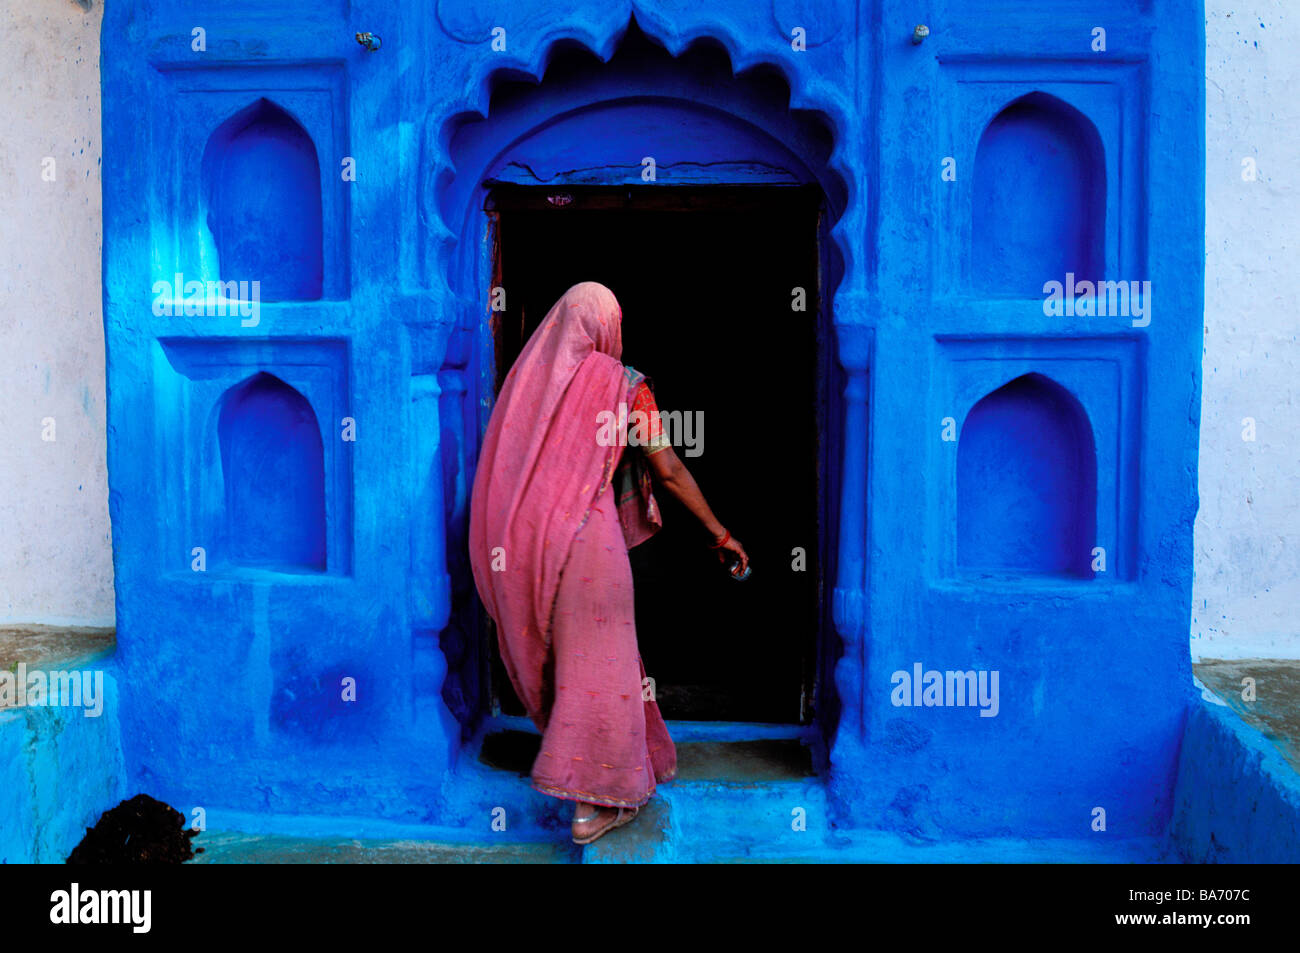 Photographystockphoto photographystockimages photographystock picture - India Rajasthan State Jodhpur The Old Blue Town Stock Image